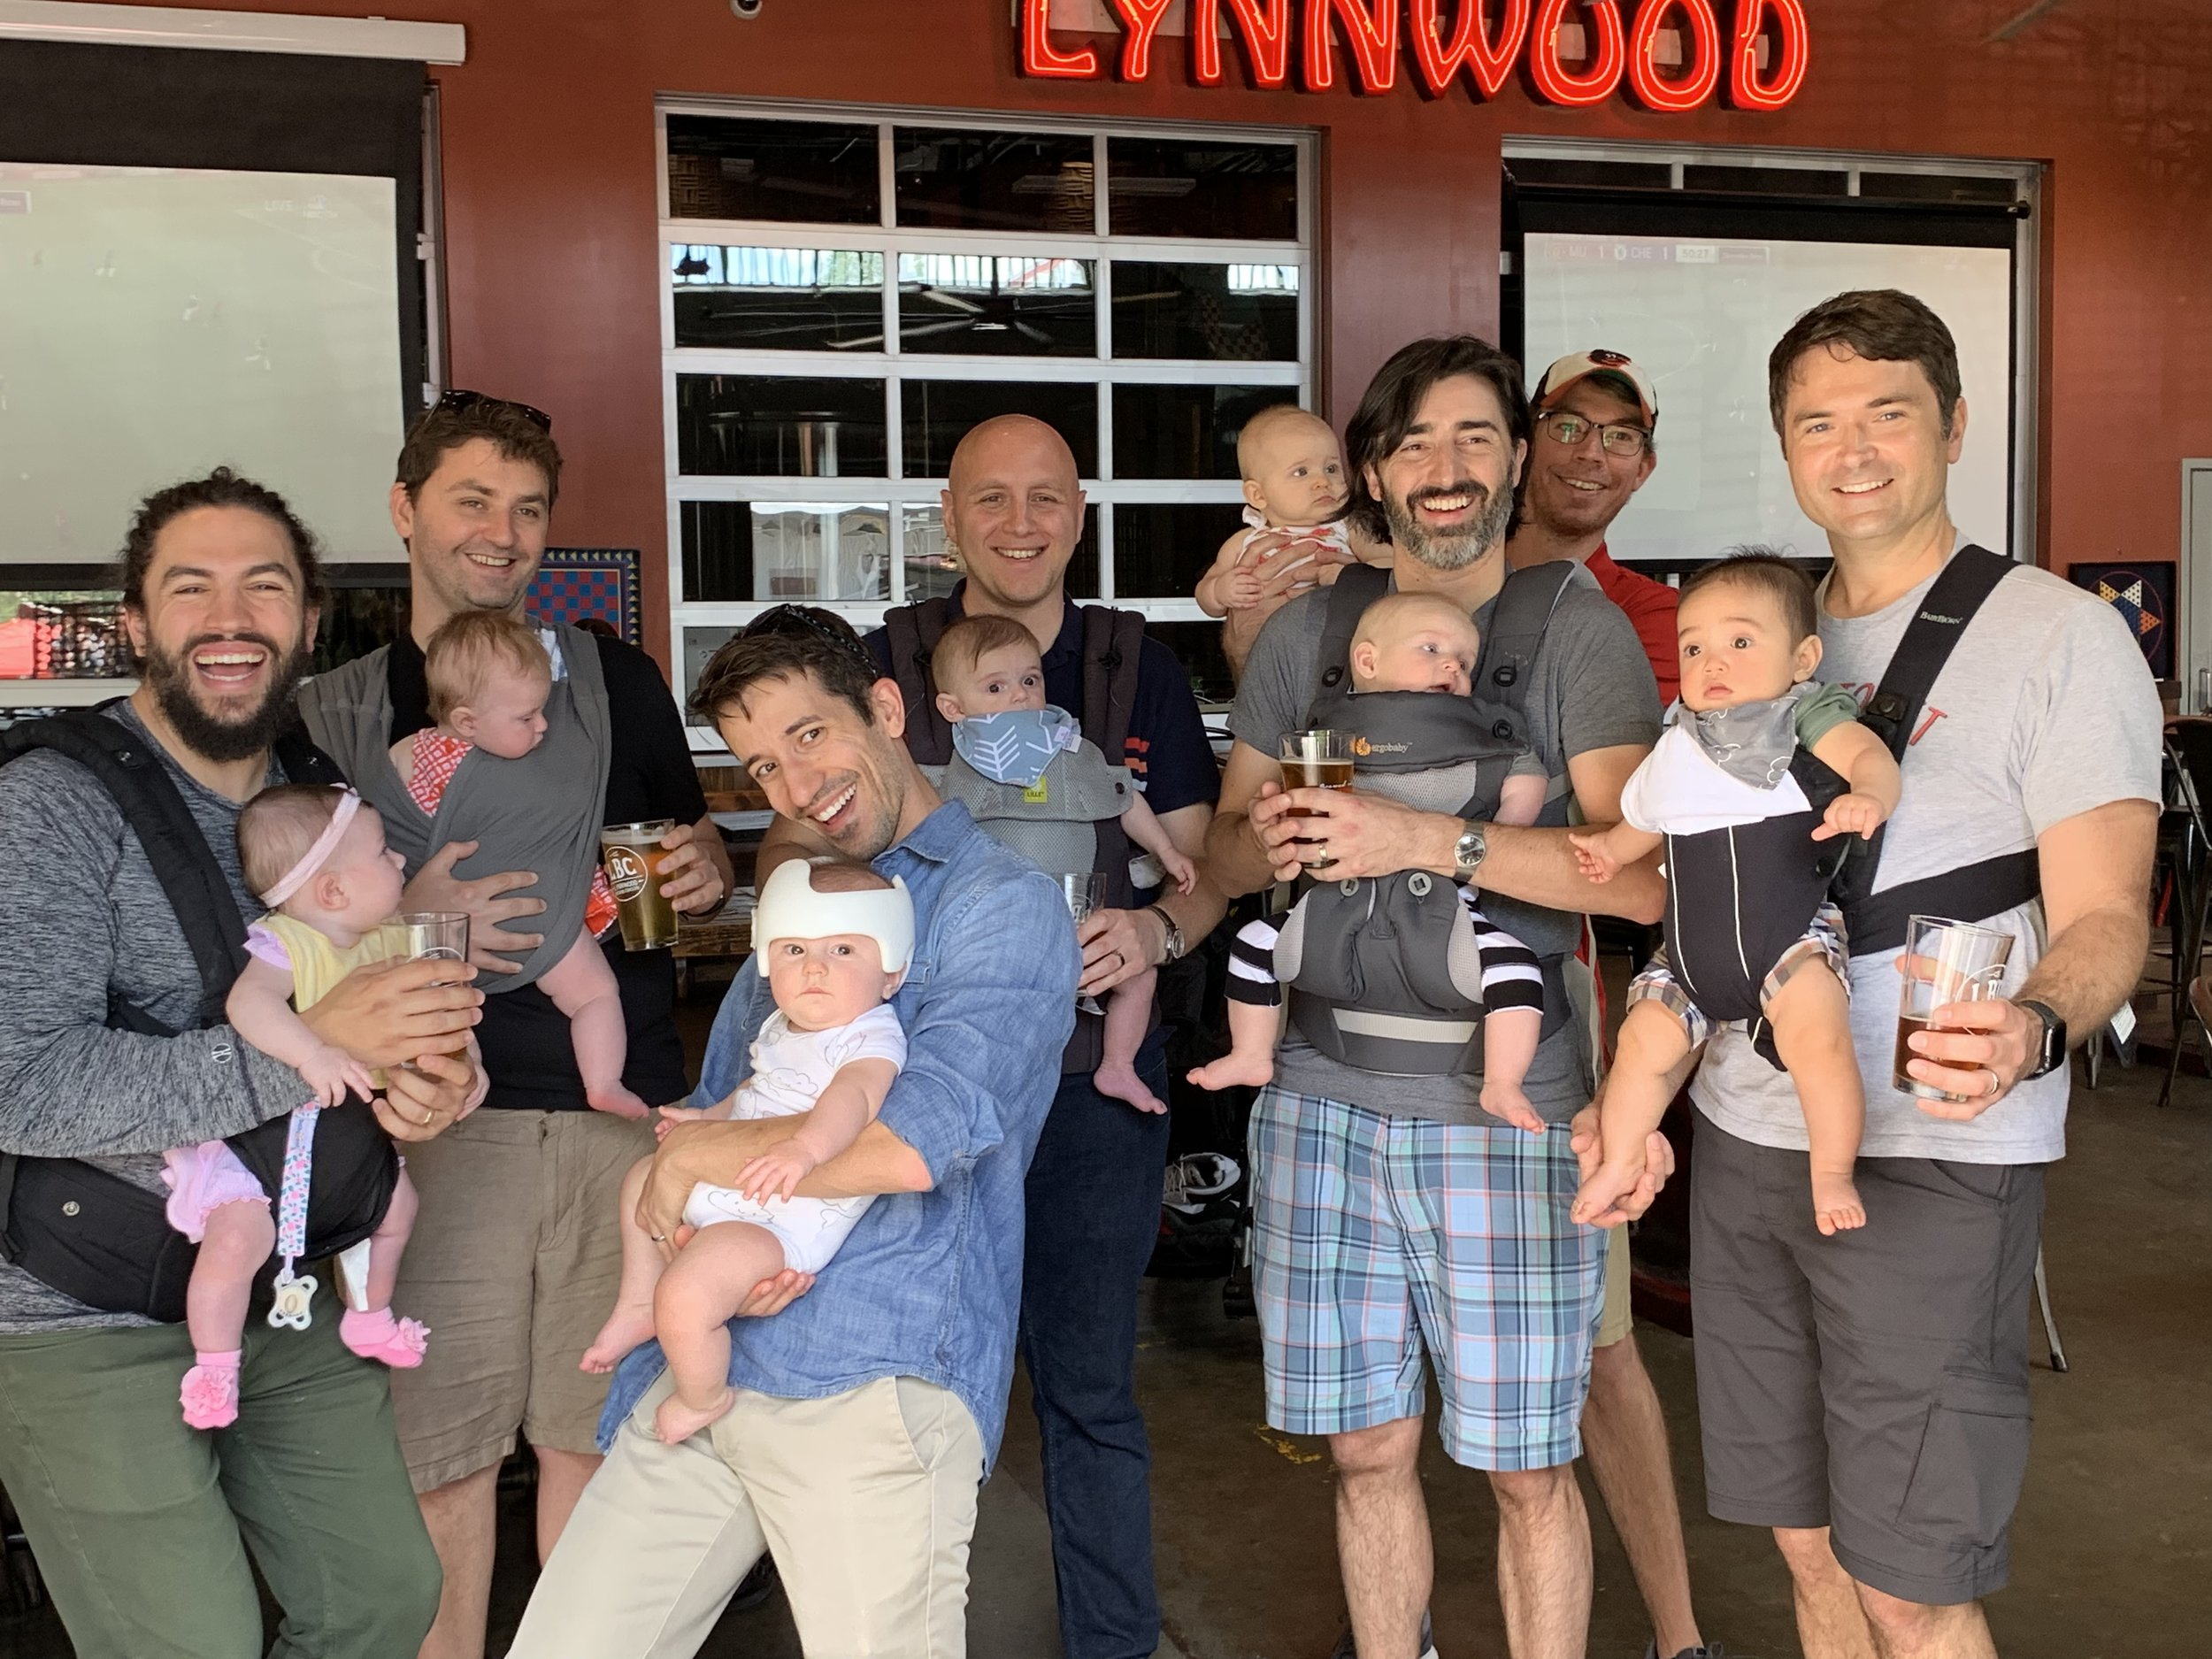 Dads can carry babies too! Adam Ness and Brian Chamberlain with the other Dads from their TAPS group at a recent family outing.